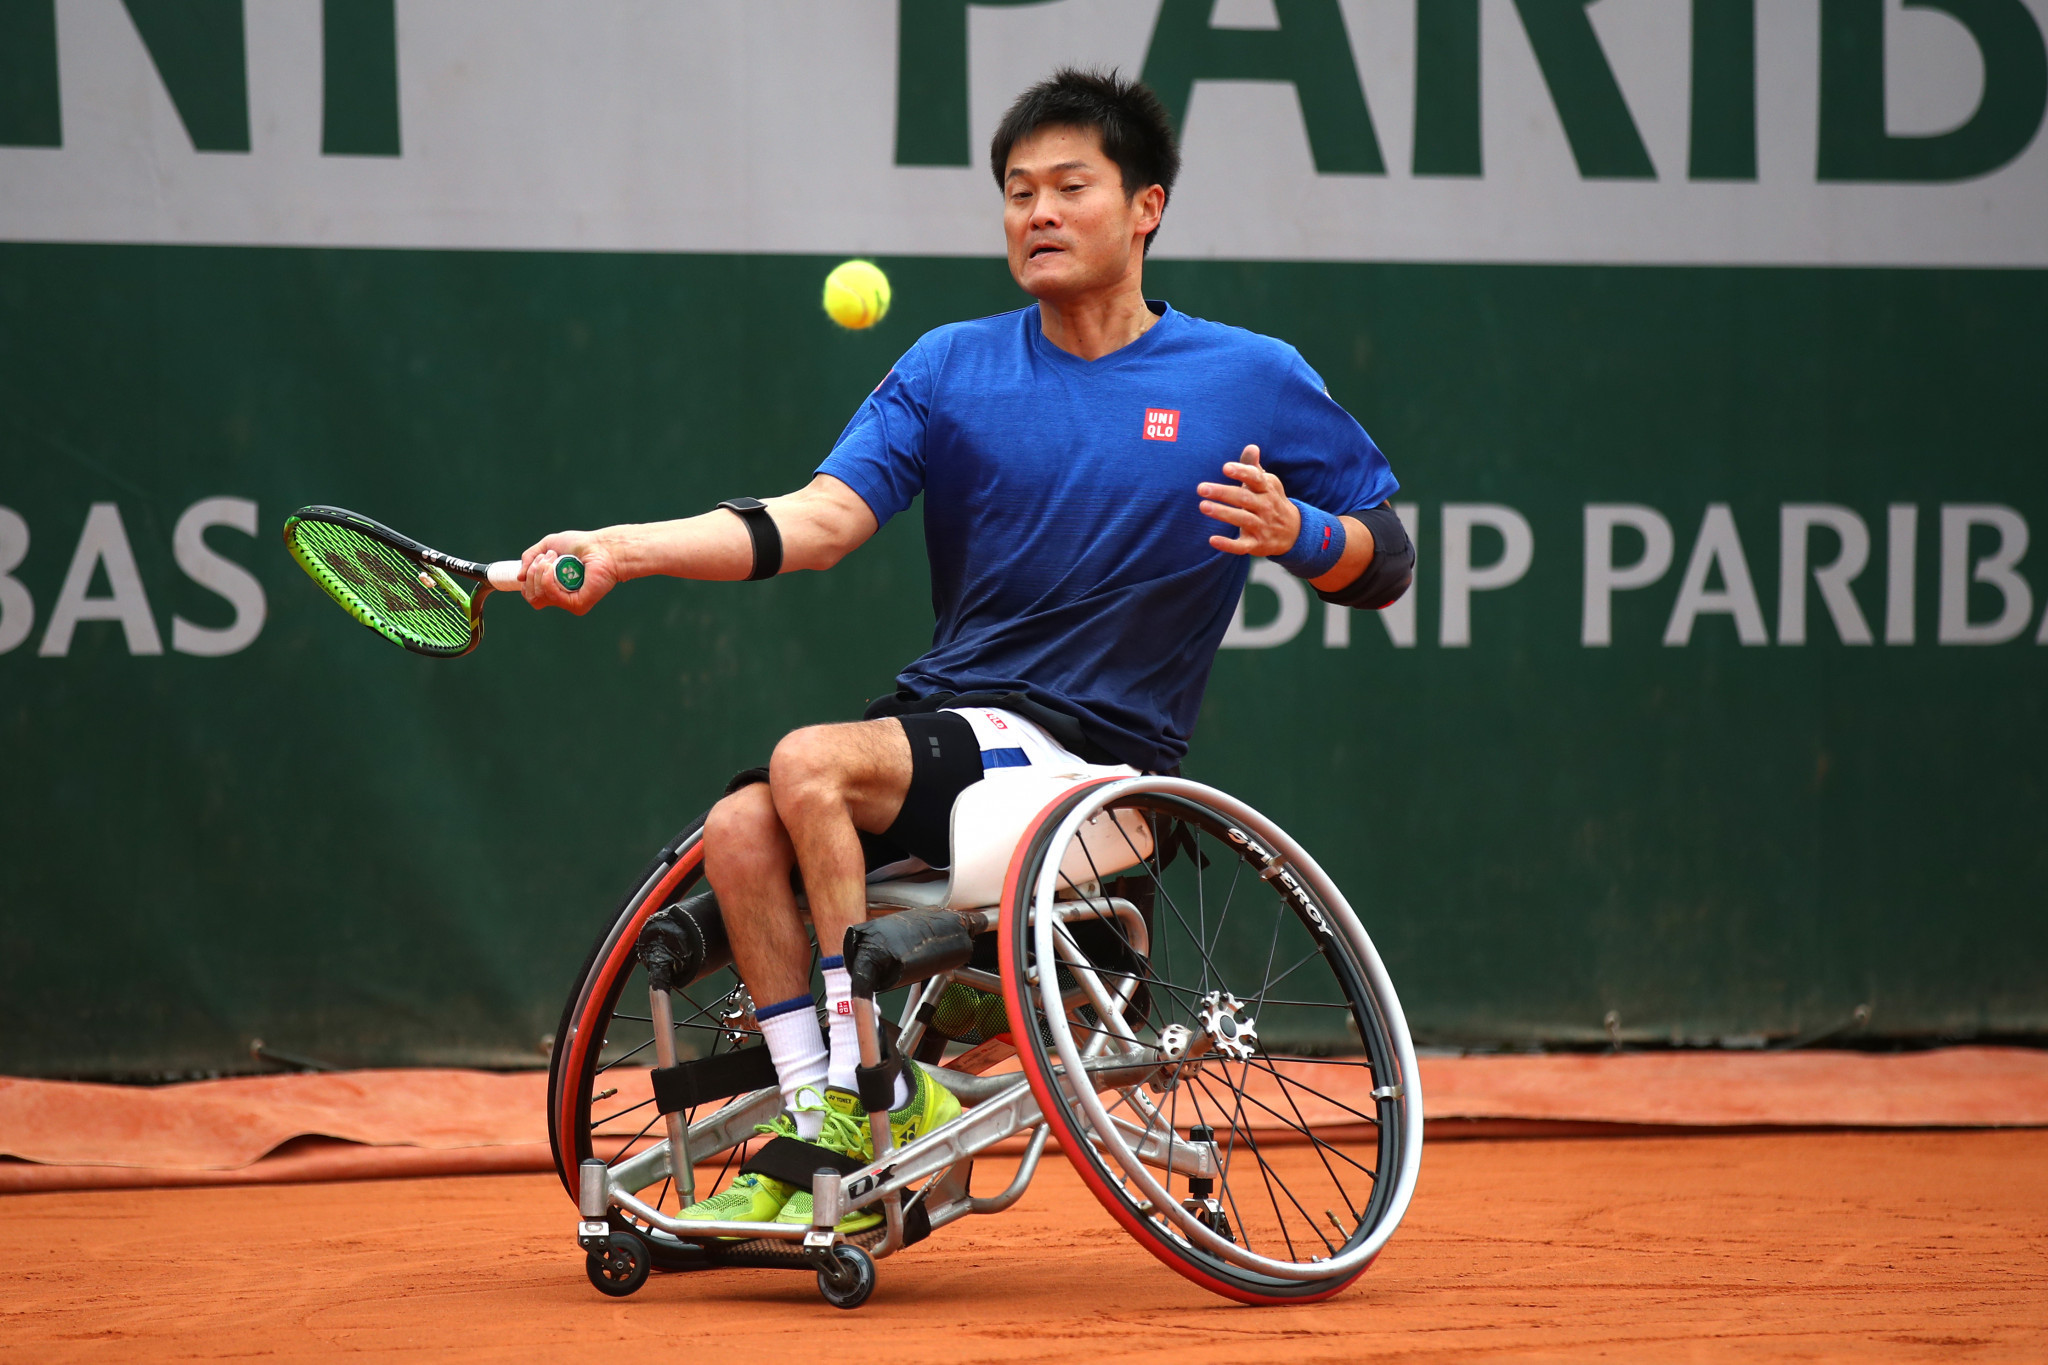 Top seed Kunieda makes impressive start to campaign at BNP Paribas Open de France